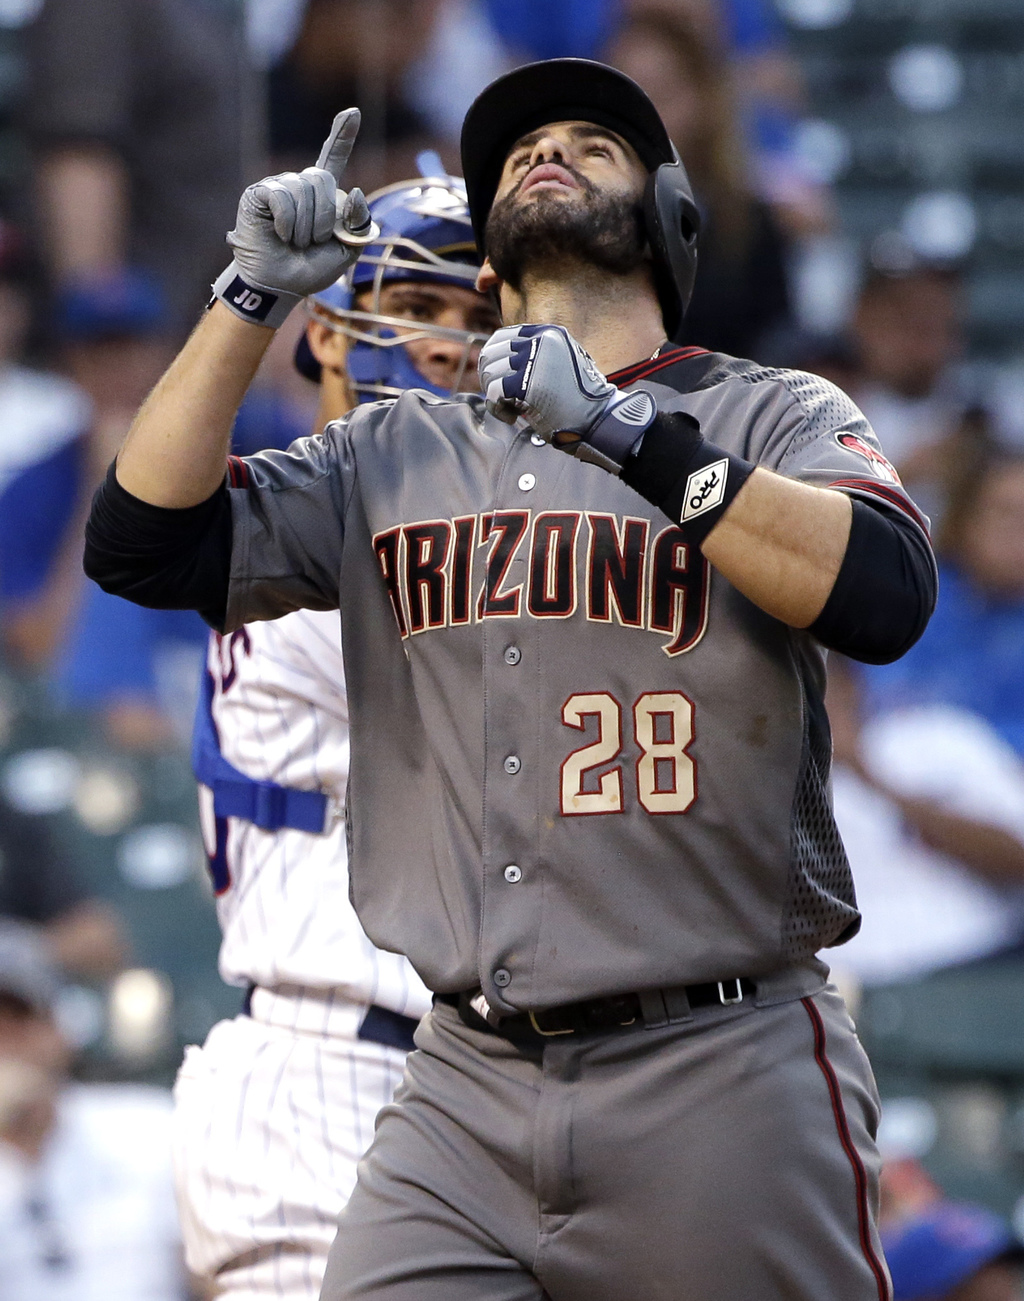 Arizona Diamondbacks' J.D. Martinez celebrates after hitting a solo home run against the Chicago Cubs during the ninth inning of a baseball game Thurs...